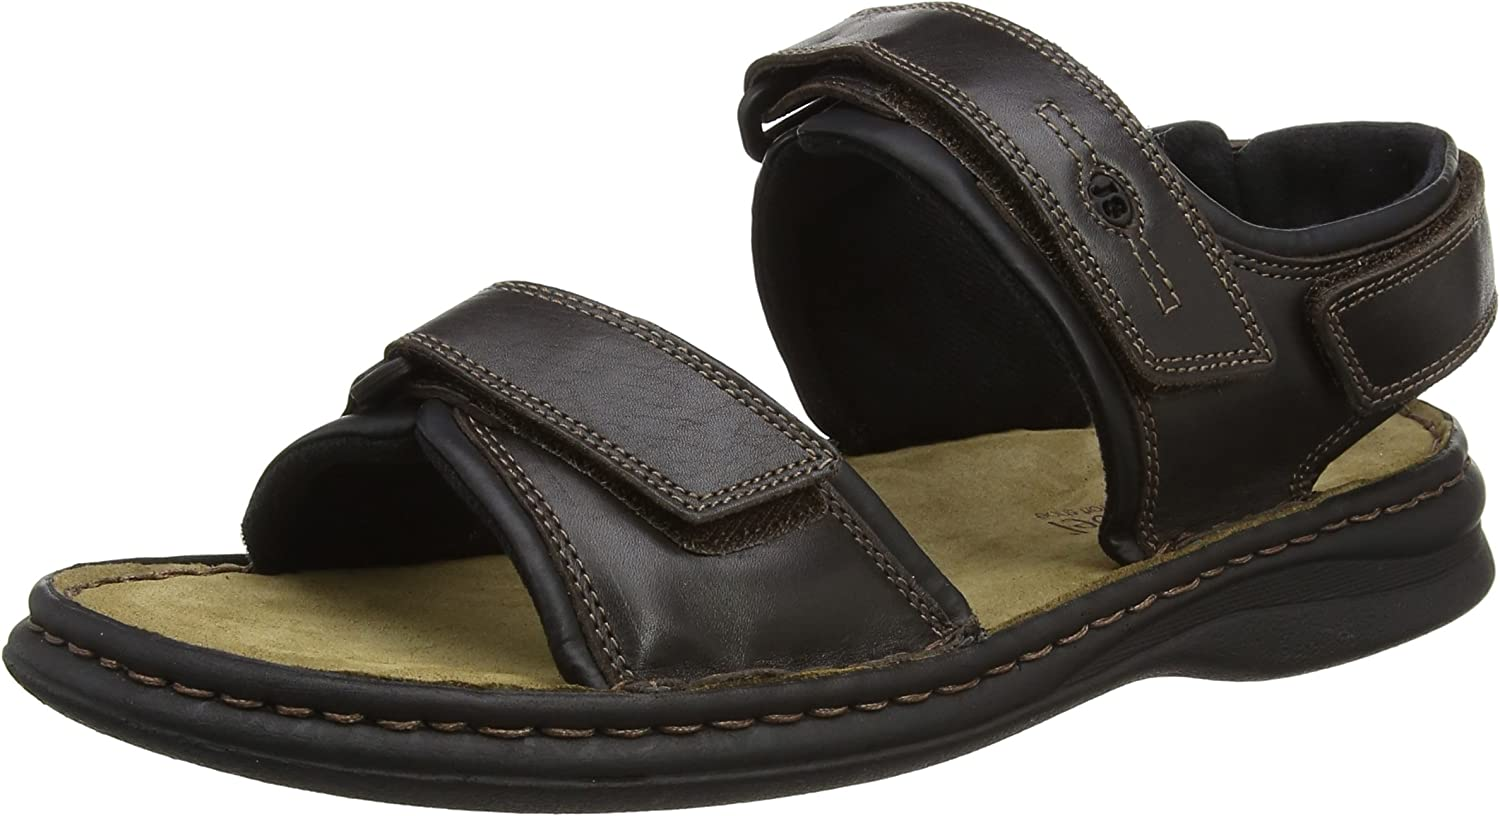 Josef Seibel Men's Rafe Open Toe Sandals